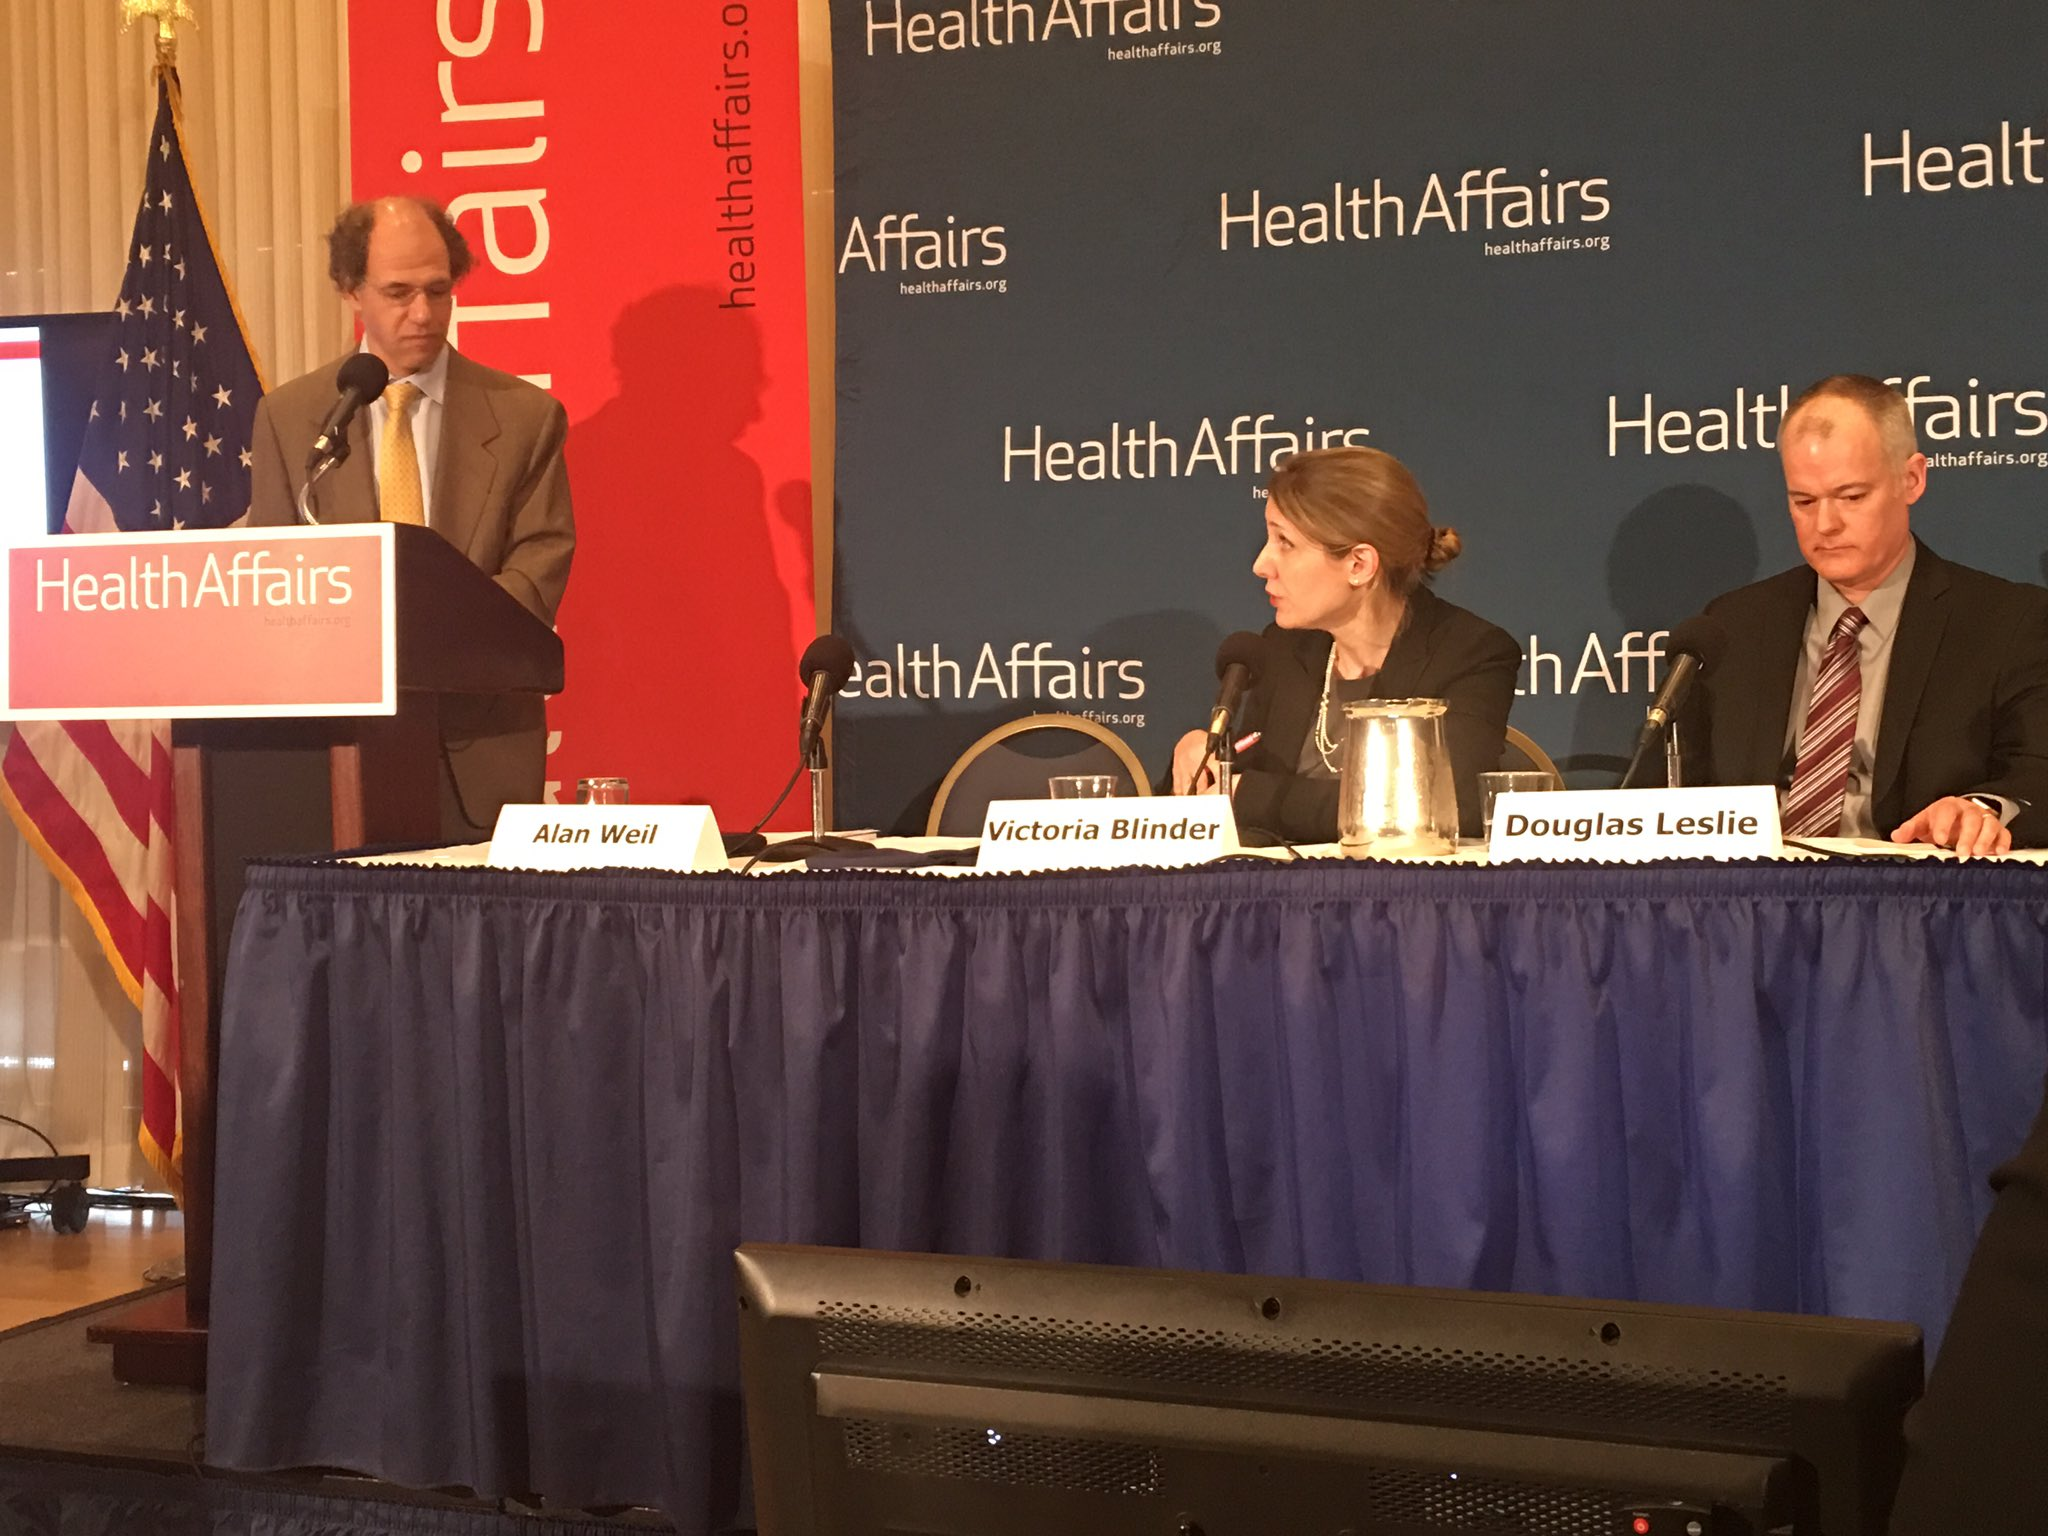 Good conversation on making the case for prioritizing worker health & safety in #SmallBiz not just large orgs #WorkandHealth @Health_Affairs https://t.co/TSlr9yHr6s